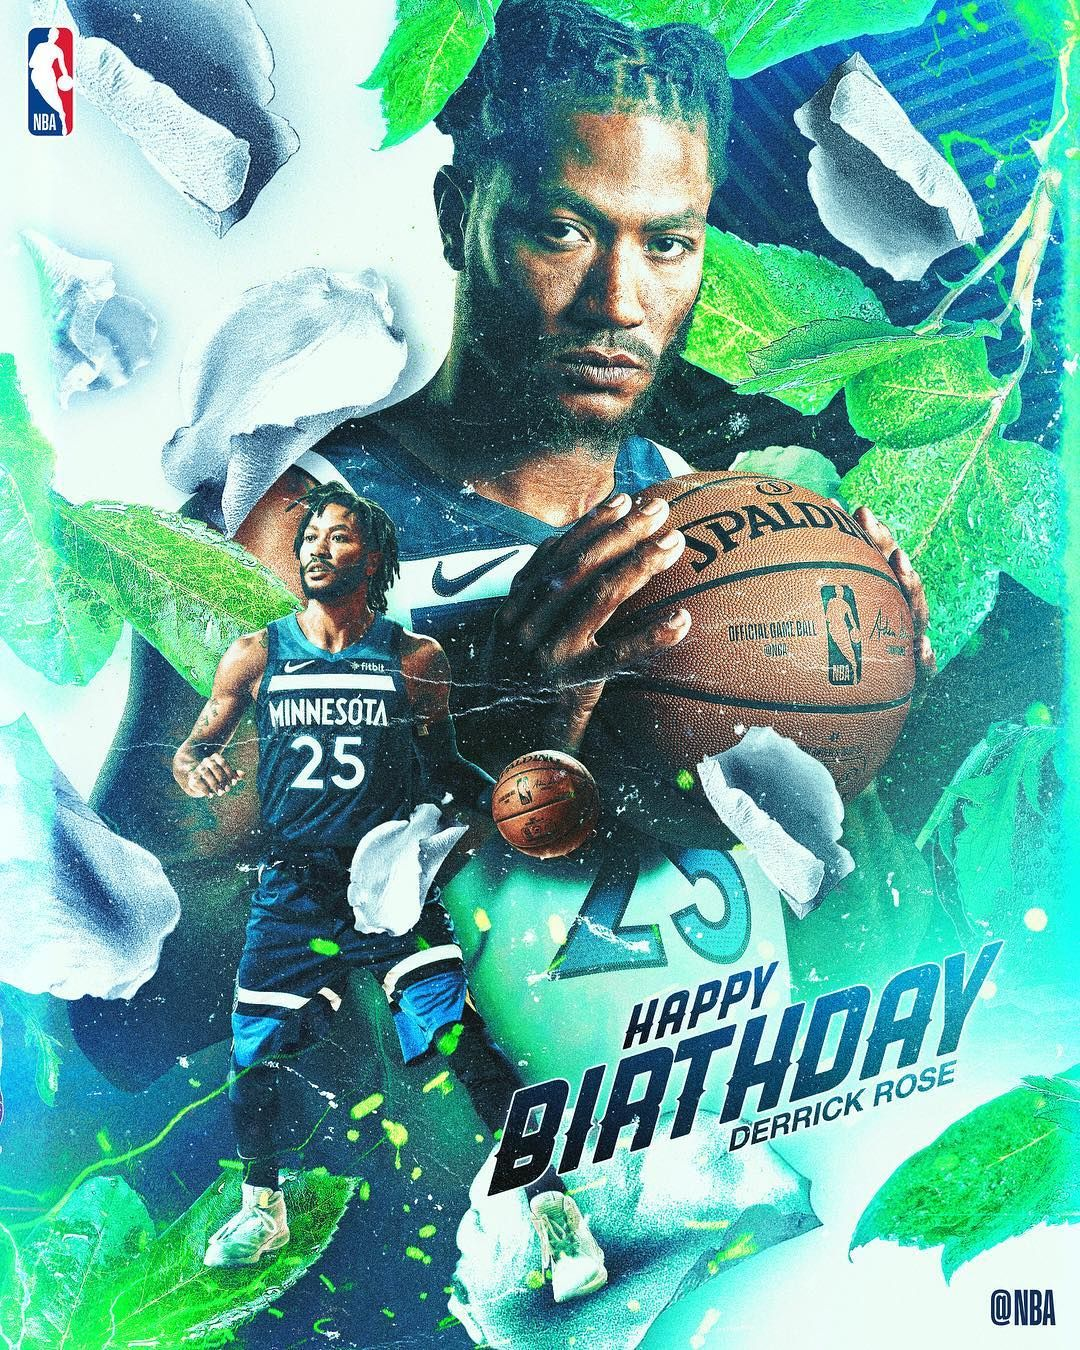 """afda845f7c71 NBA on Instagram  """"Join us in wishing Derrick Rose of the  timberwolves a  HAPPY 30th BIRTHDAY!  NBABDAY"""""""